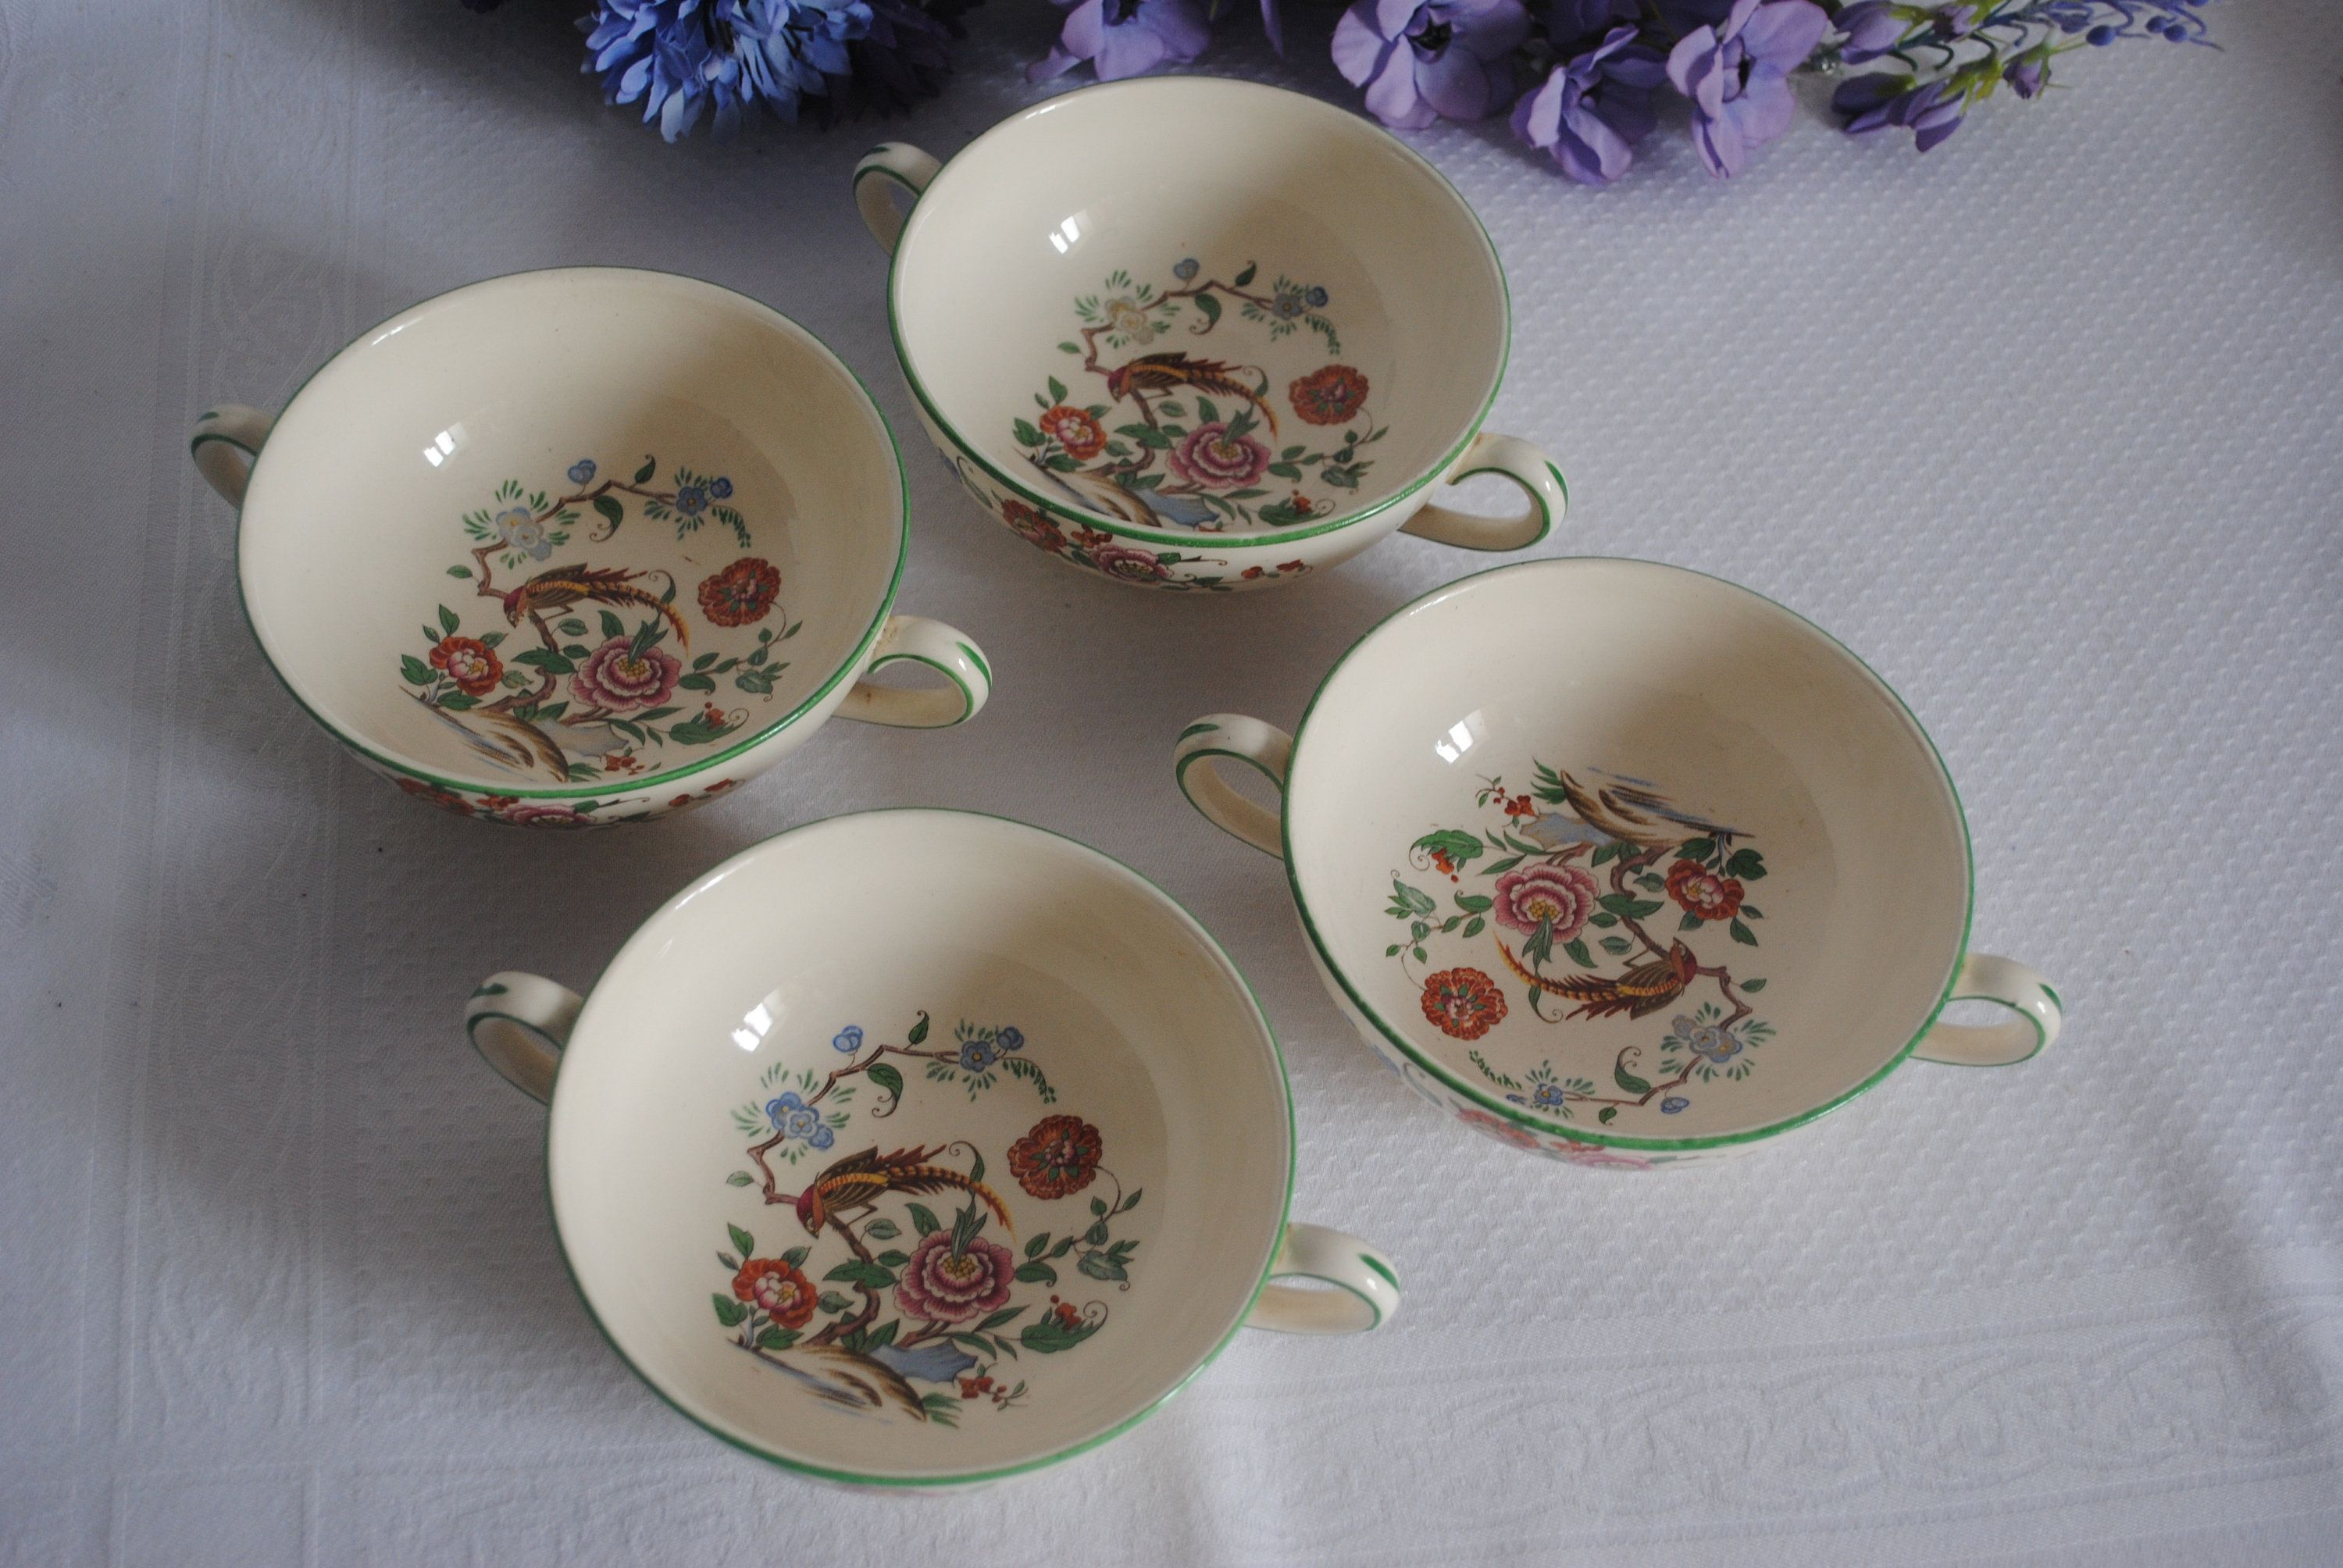 Bishop China Made In England Vintage Soup Bowls Soup Cups Two Handled Bowls Pattern 3413 Soup Bowl Handled Bowls Bowl